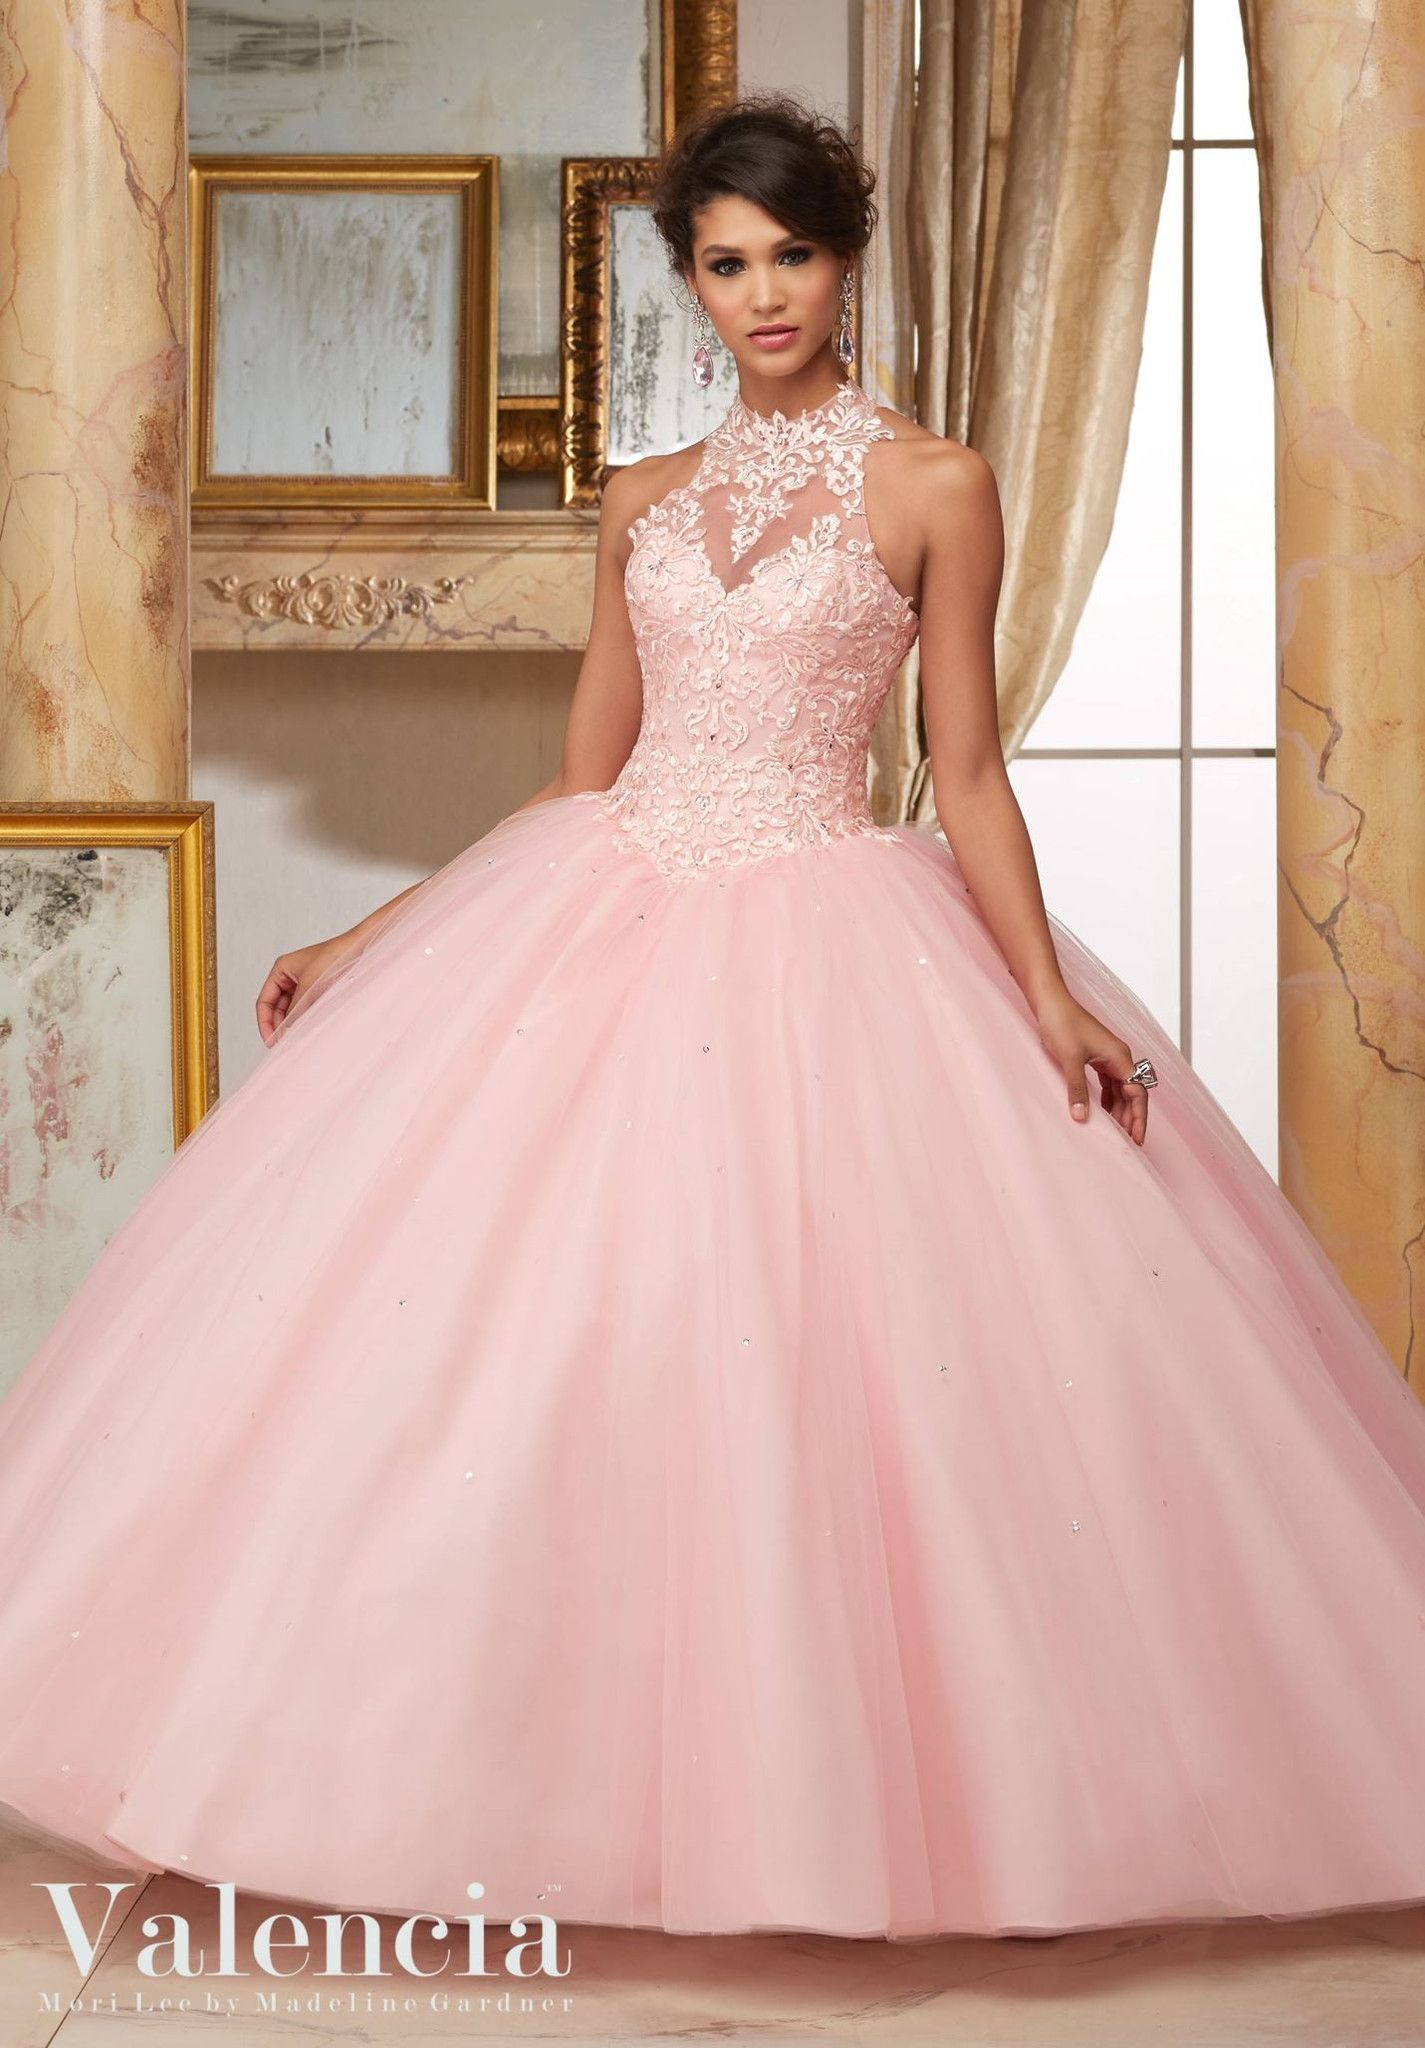 Mori Lee Valencia Quinceanera Dress 60004 | Vestido de quince ...